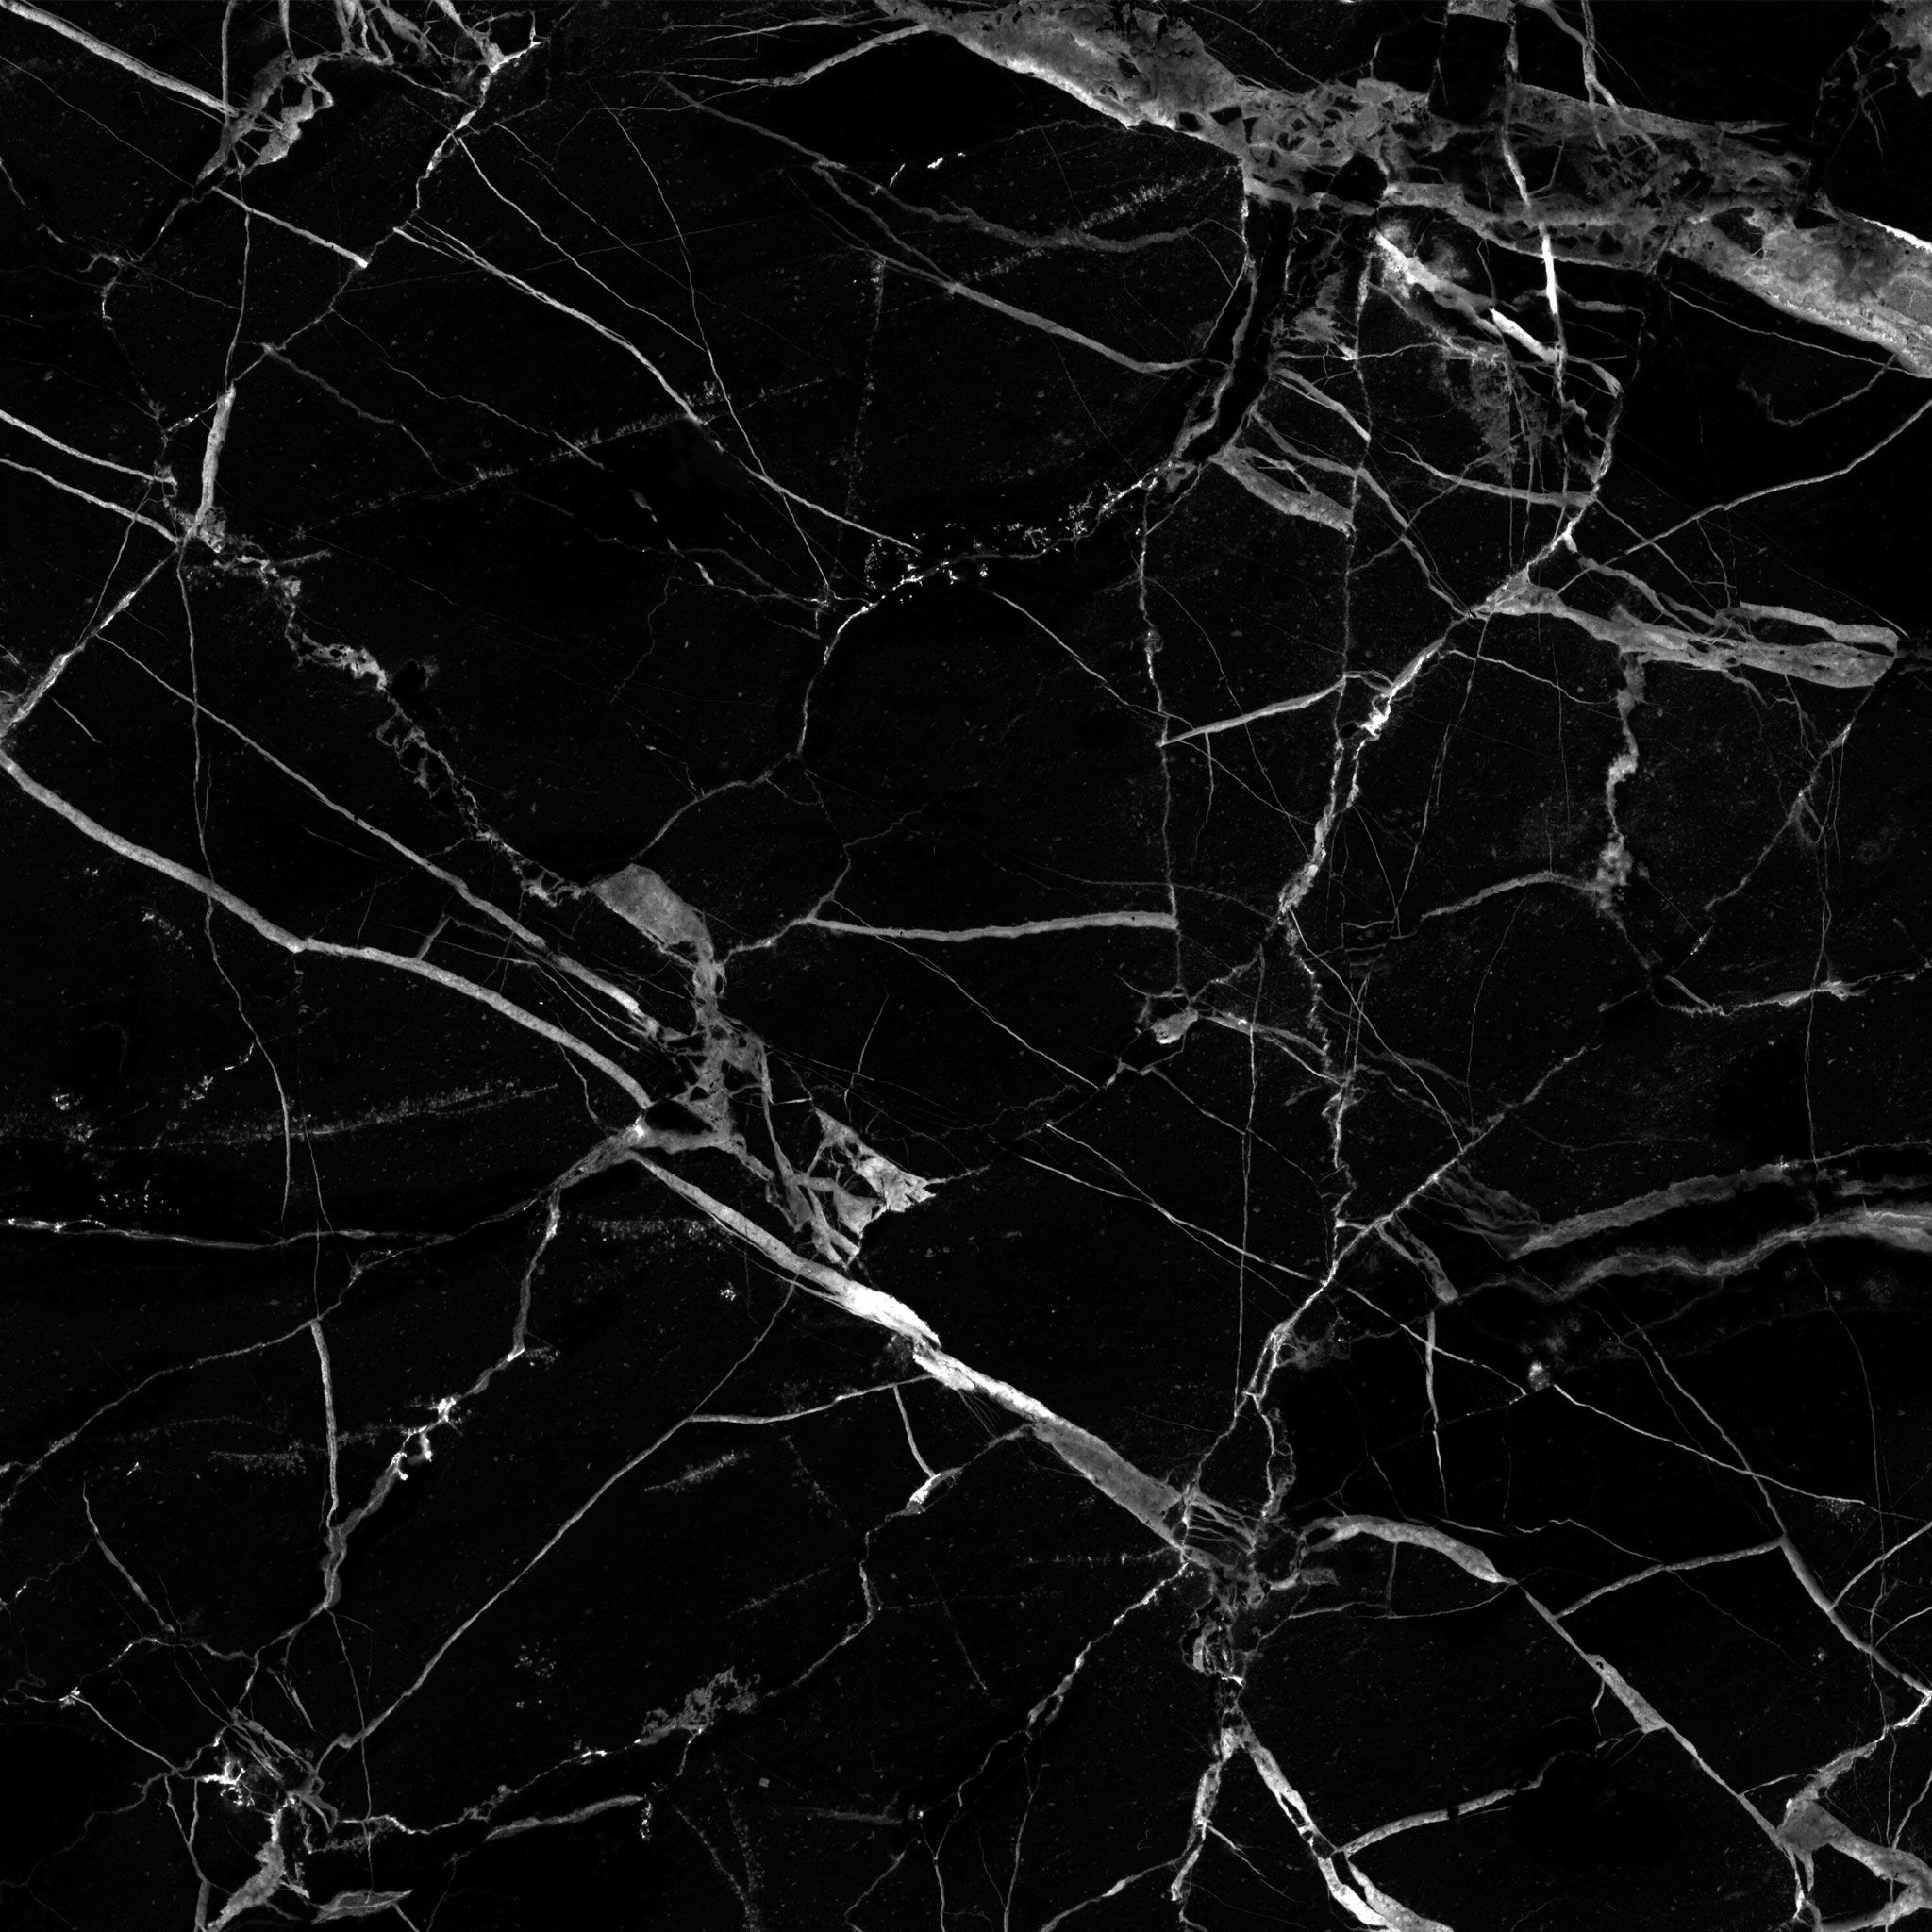 marble black and white hd Google Search Black marble